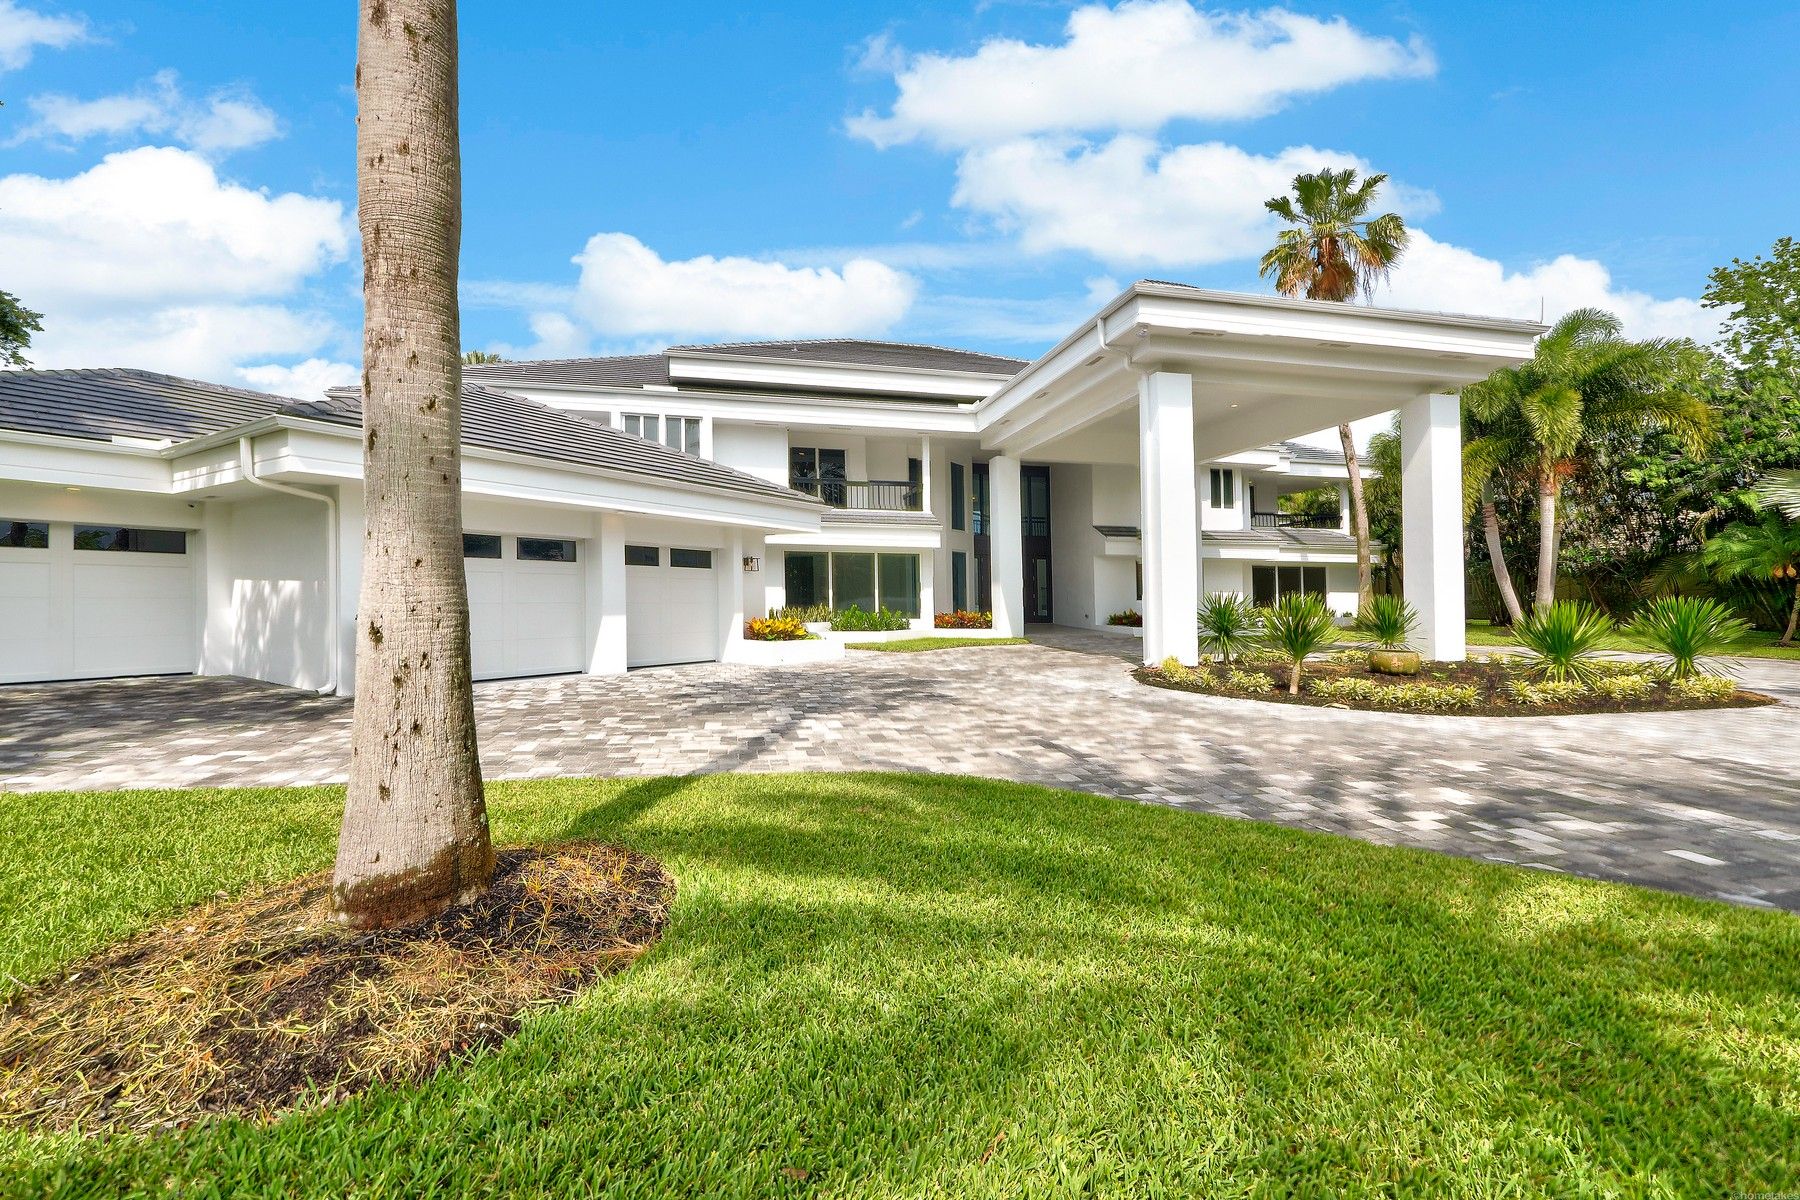 Villa per Vendita alle ore 2771 Long Meadow Drive Wellington, Florida, 33414 Stati Uniti